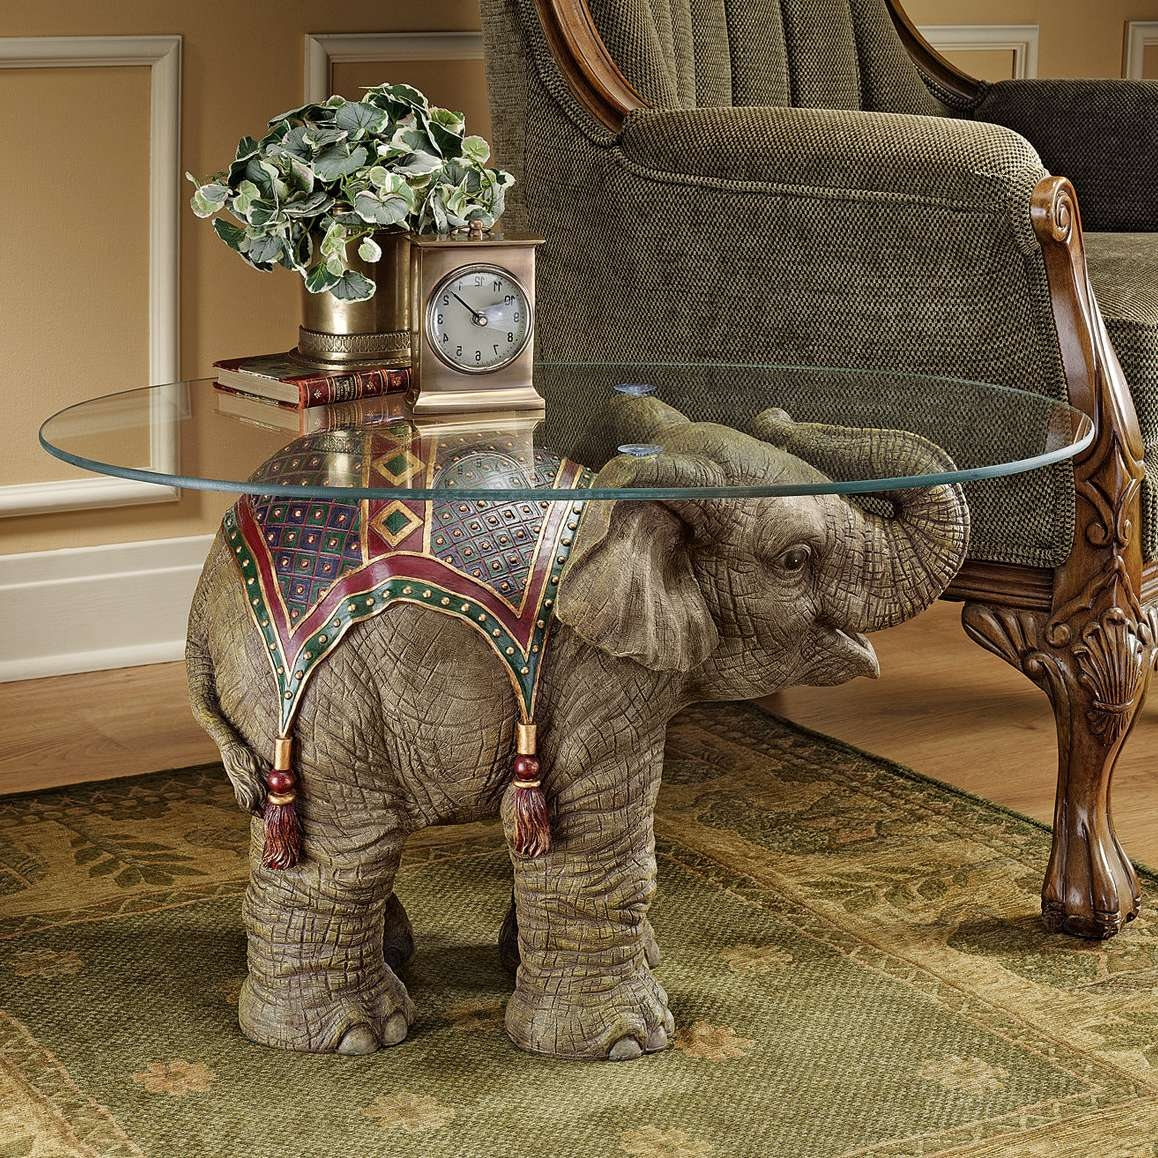 Current Elephant Coffee Tables Throughout Design Toscano Jaipur Elephant Festival Coffee Table & Reviews (View 2 of 20)